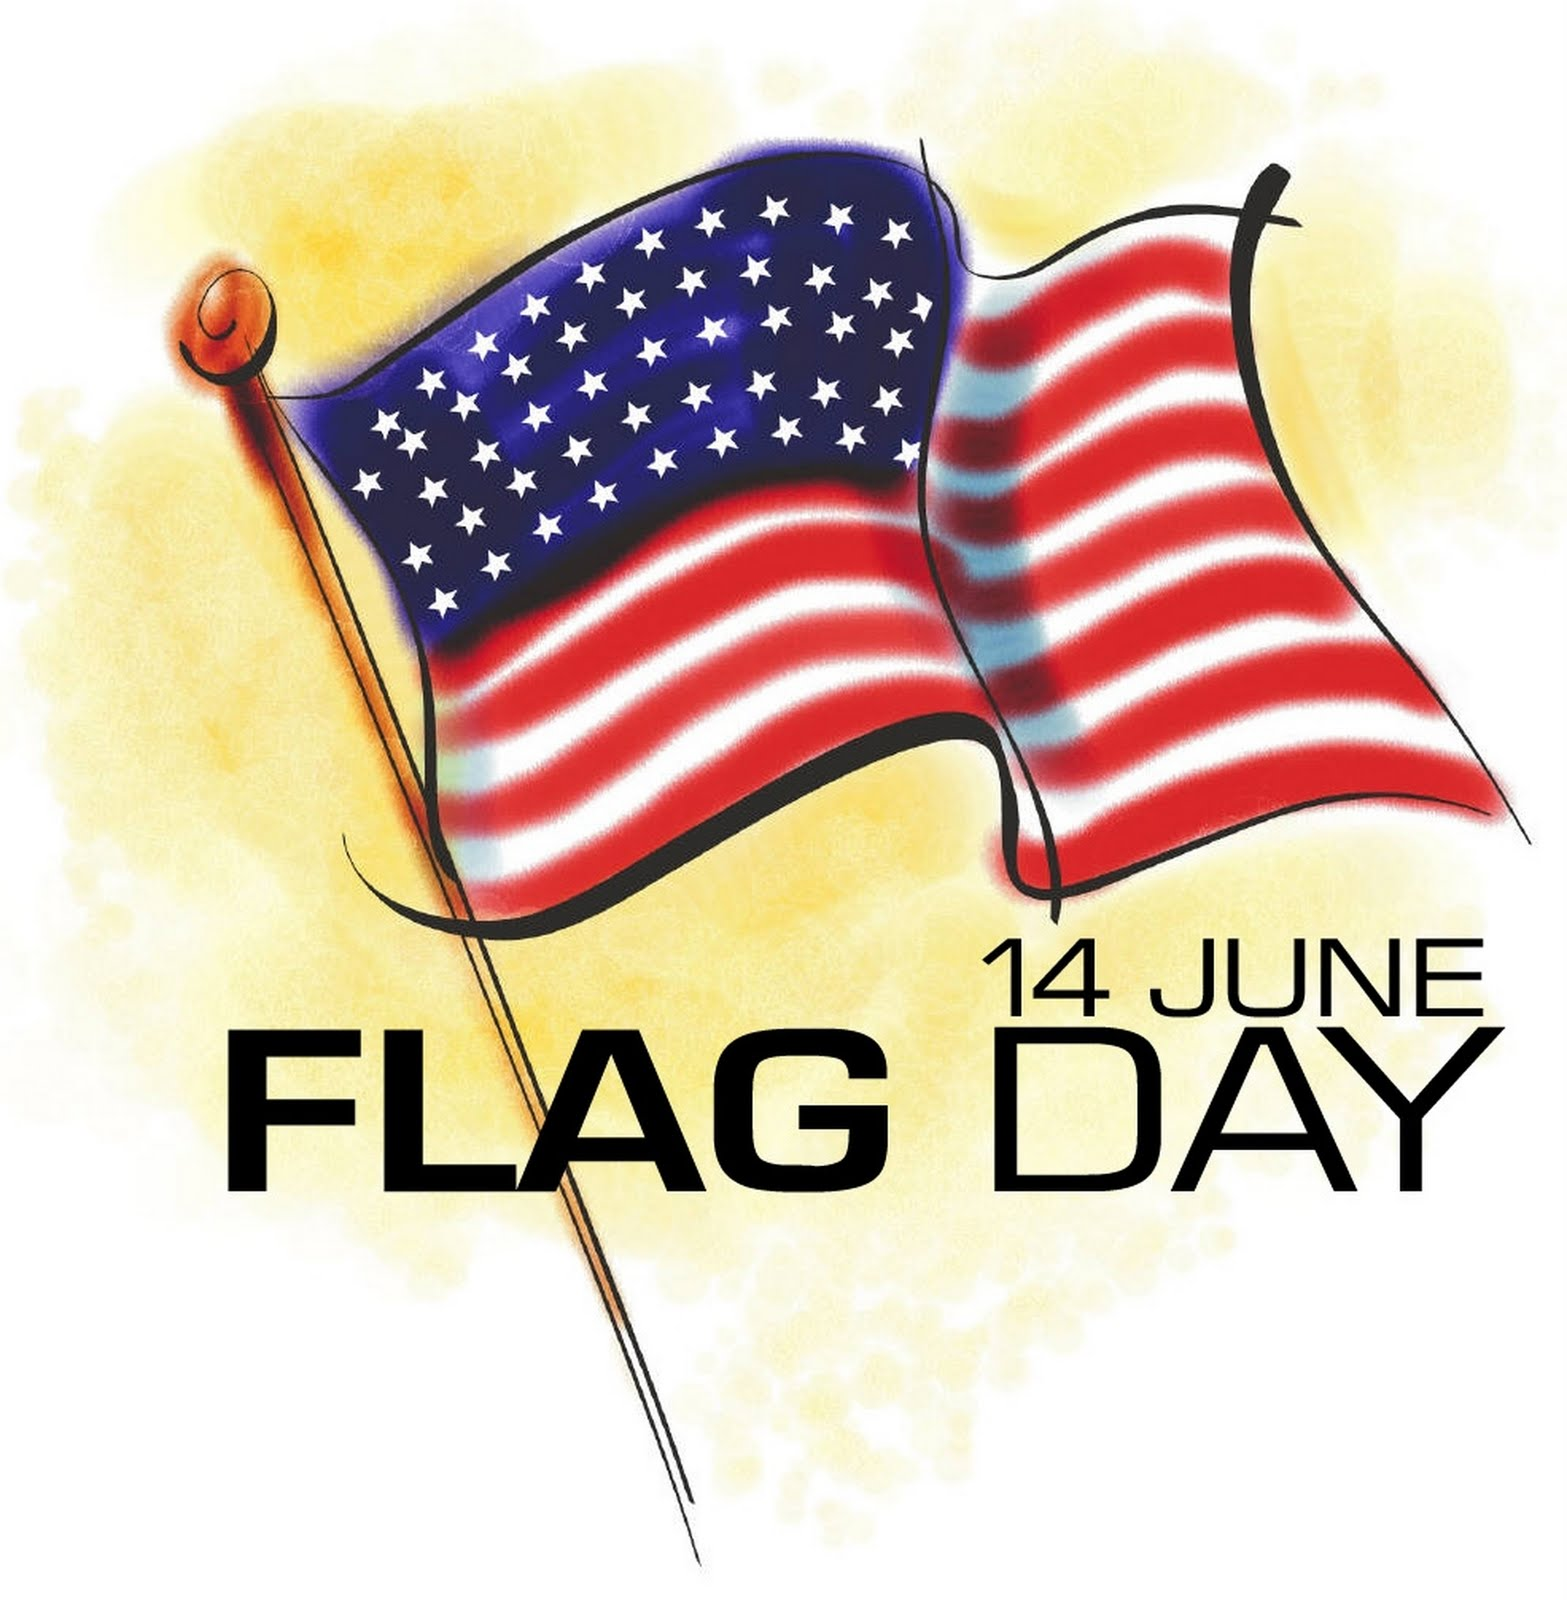 Annies home happy day. Celebrate clipart flag